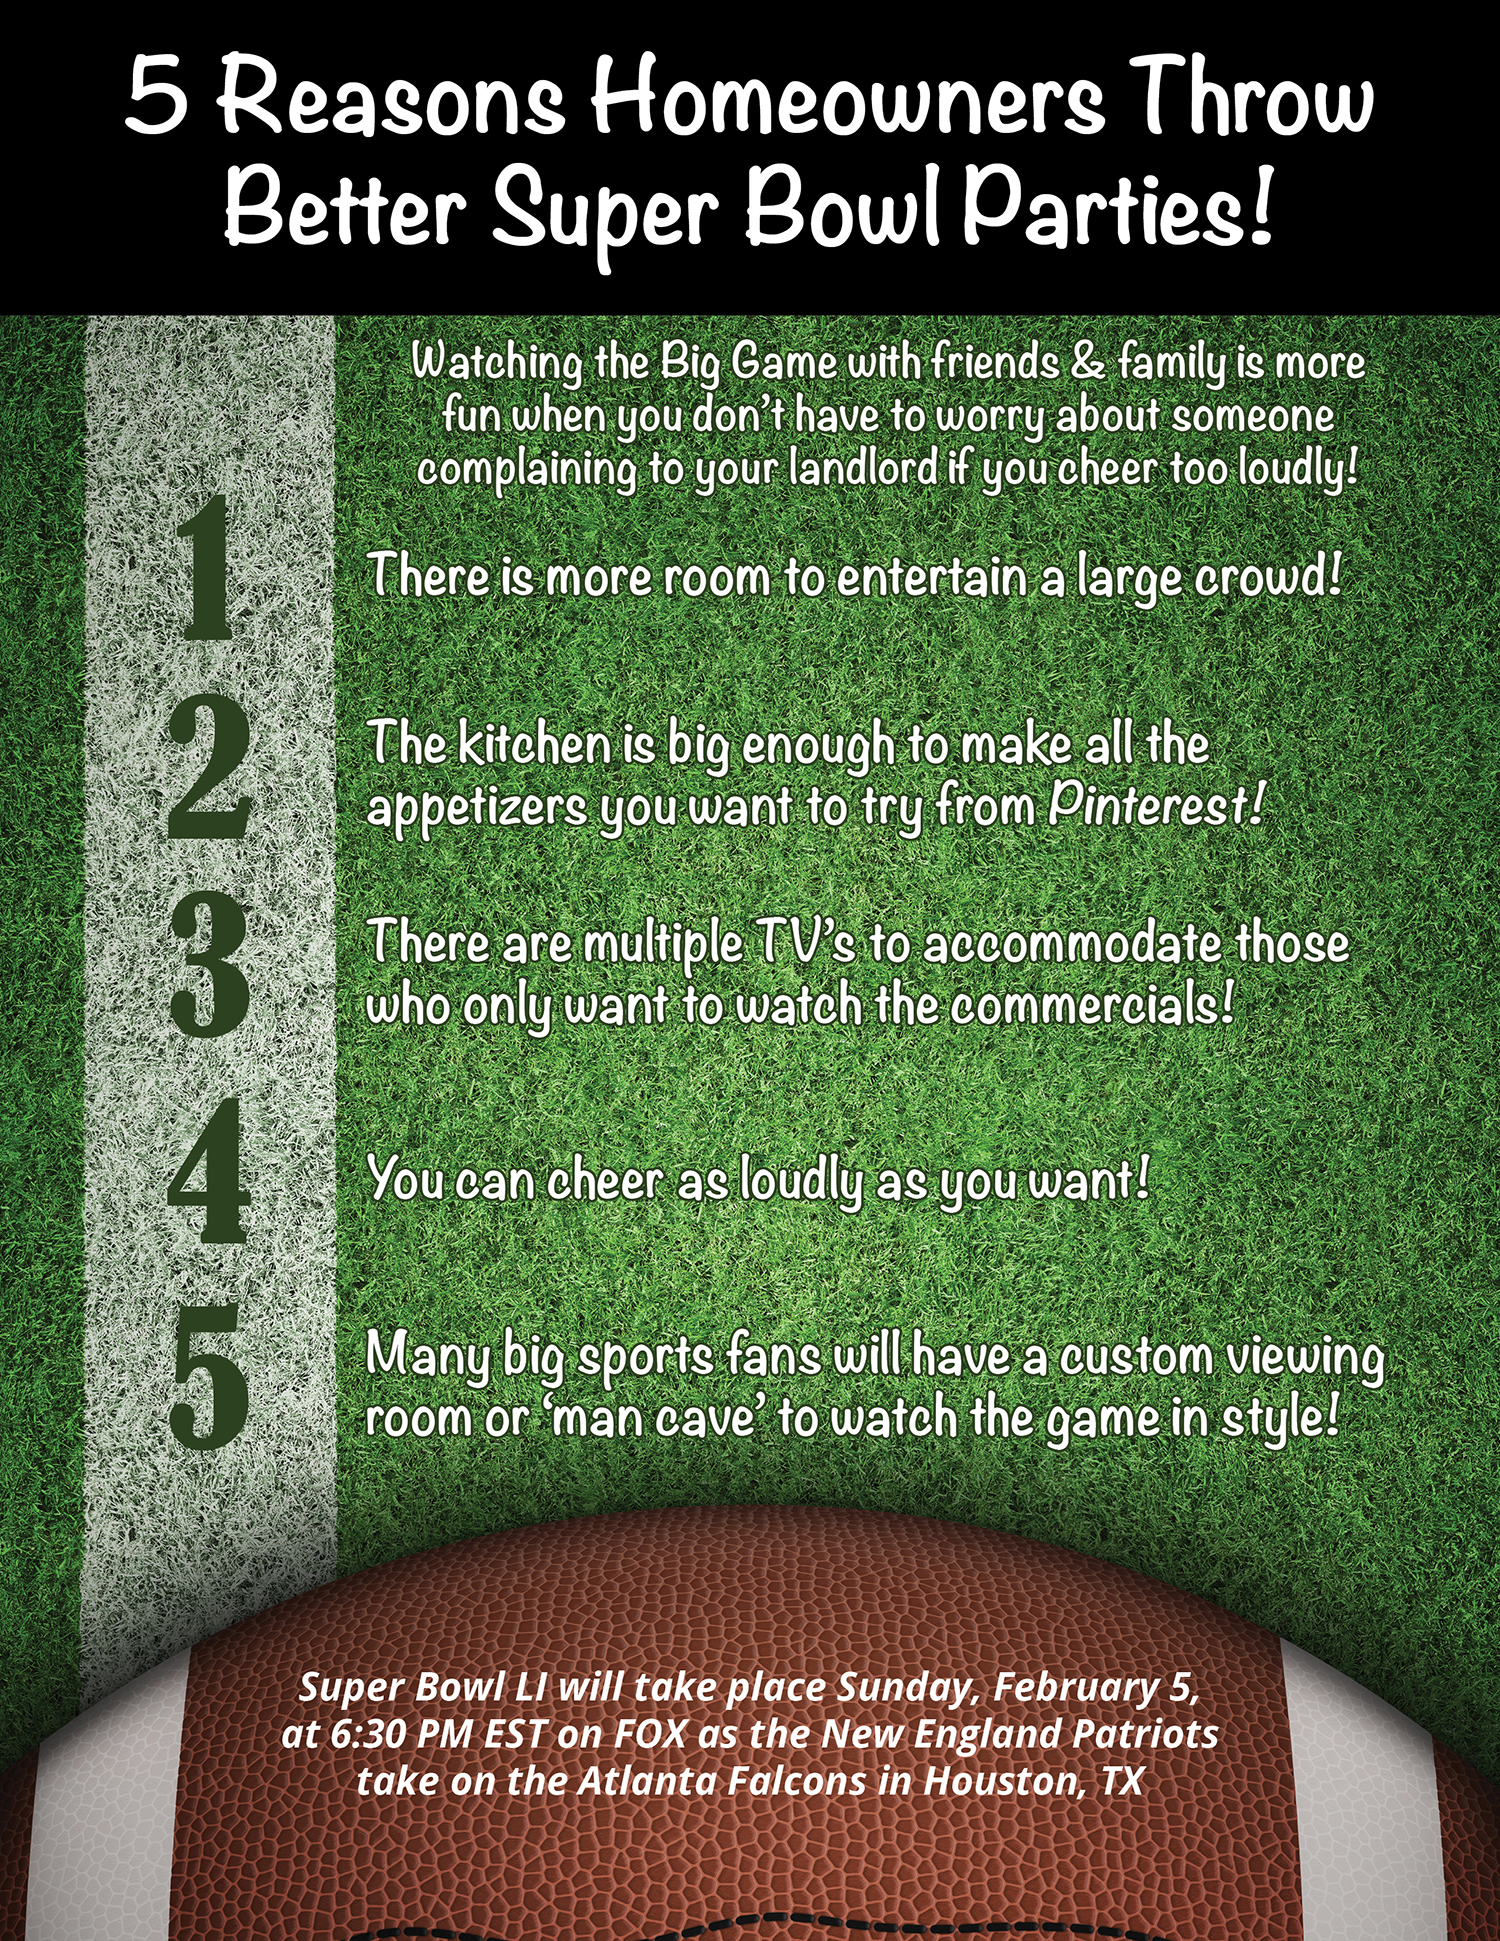 5 Reasons Homeowners Throw Better Super Bowl Parties! [INFOGRAPHIC] | Simplifying The Market